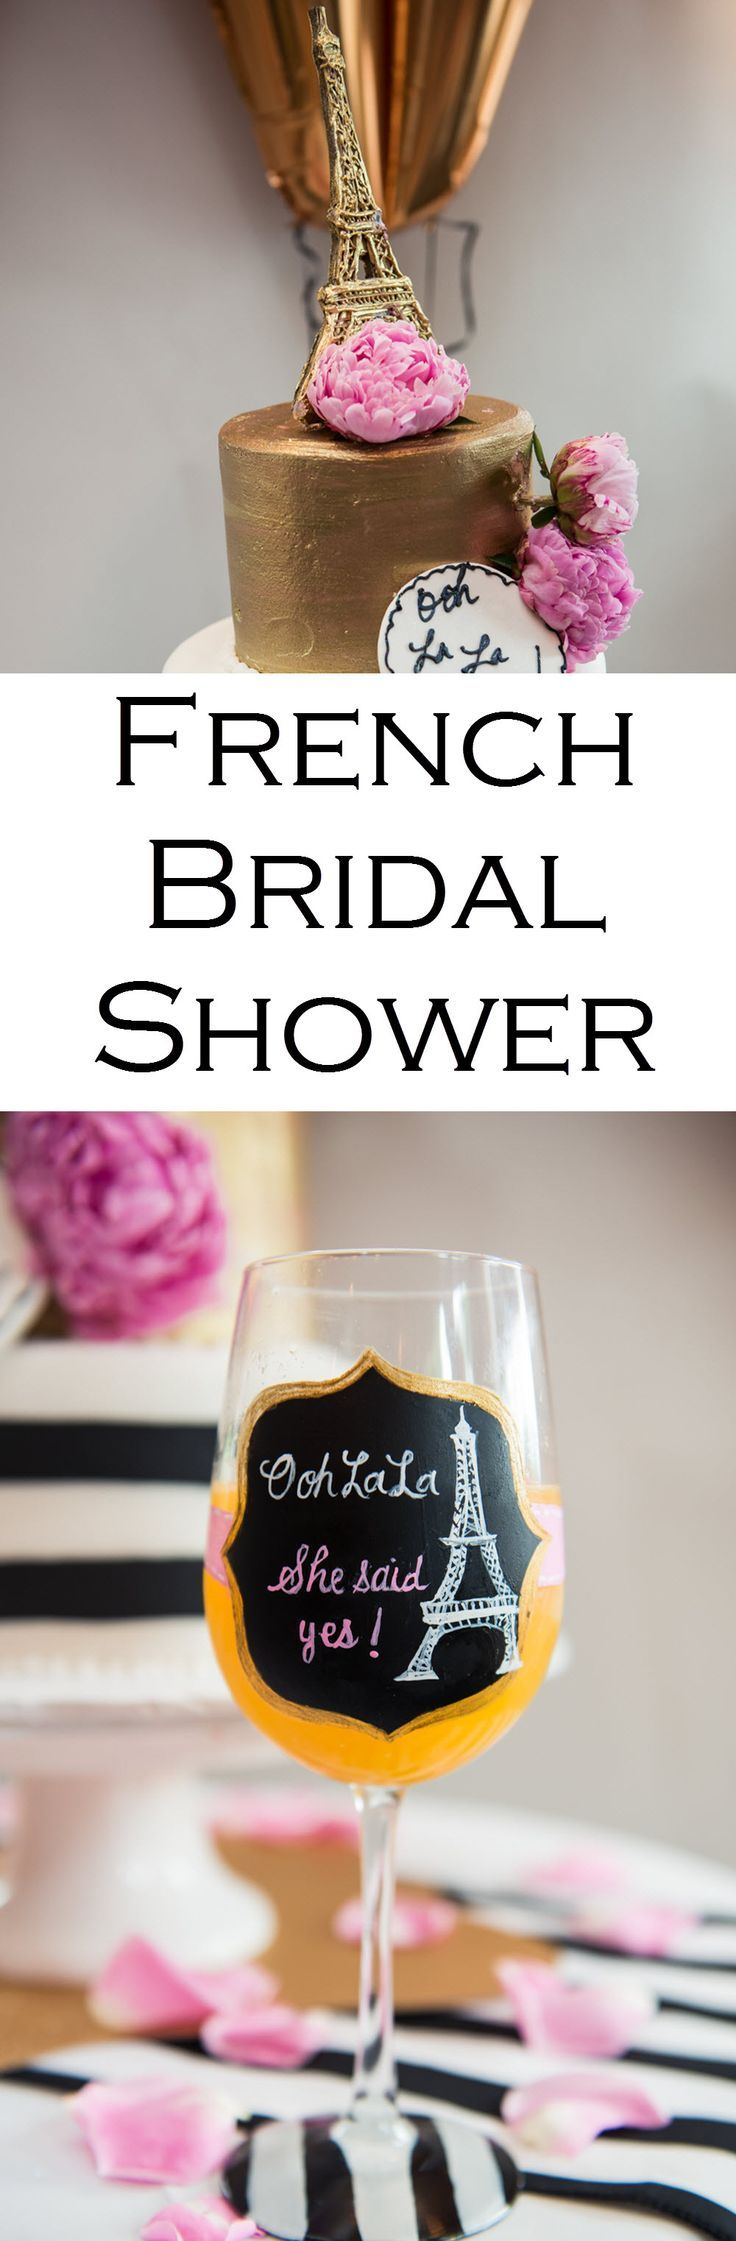 bridal shower poem for not wrapping gifts%0A A Paris  France Themed Bridal Shower  Great ideas for the cake  drinks